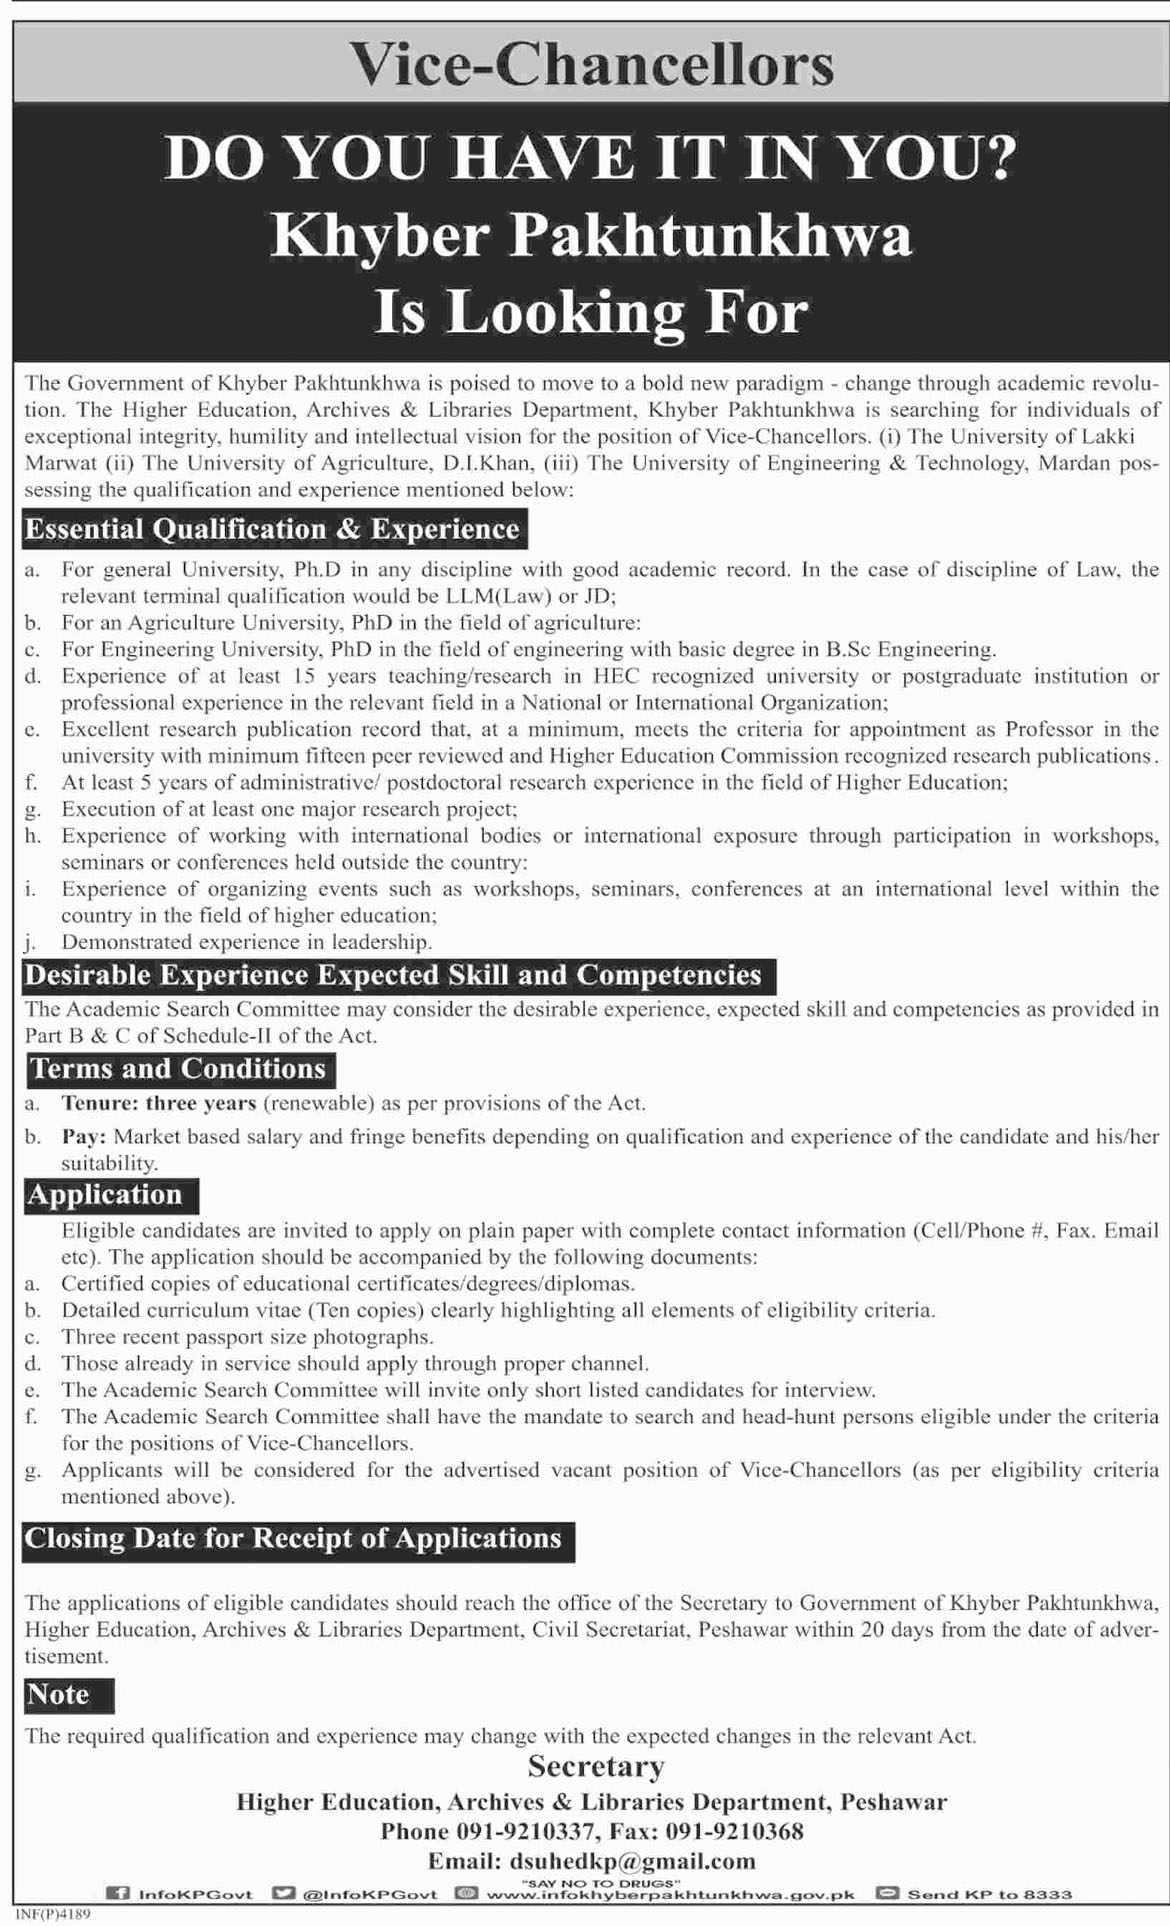 Jobs In The Higher Education Archives And Libraries Department 06 Nov 2018